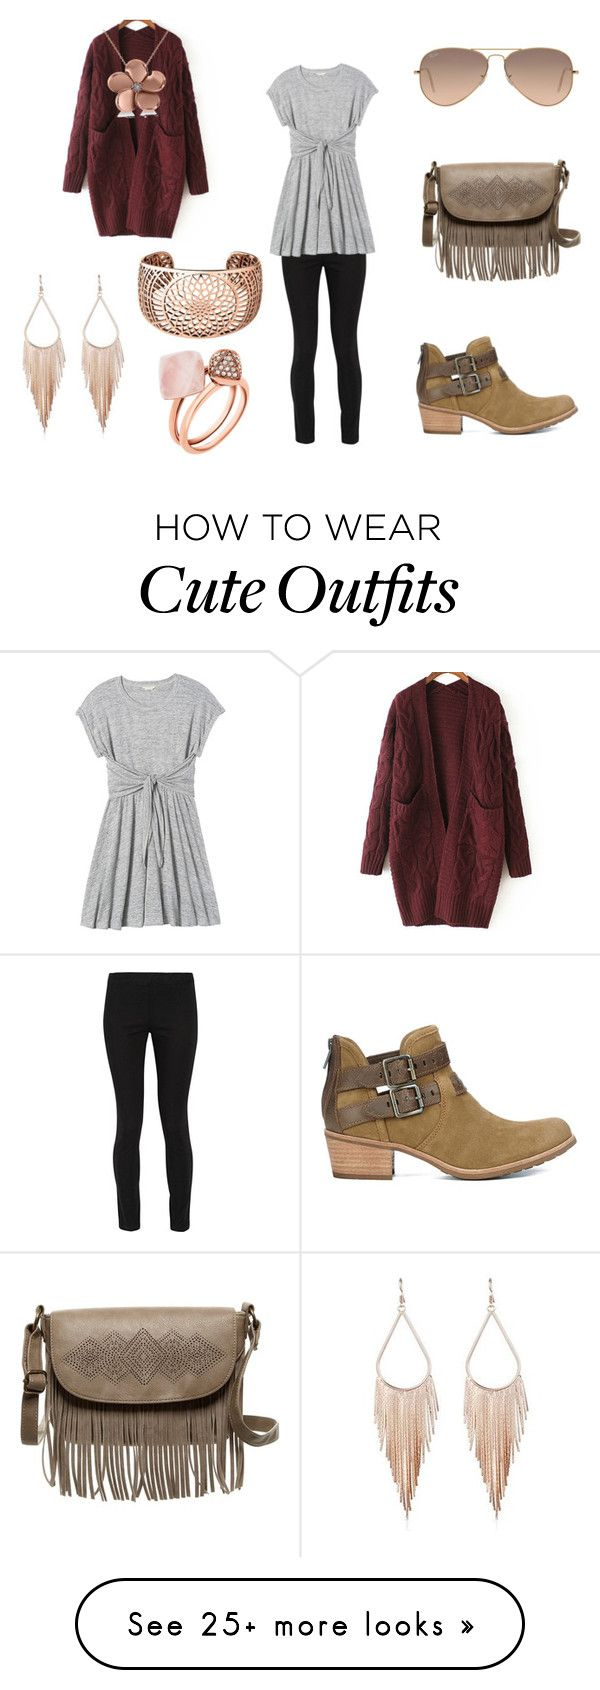 """Cute Winter Outfit"" by holly32196 on Polyvore featuring The Row, Rebecca Taylor, WithChic, UGG Australia, T-shirt & Jeans, Allurez, Links of London, Ray-Ban, Michael Kors and cute"